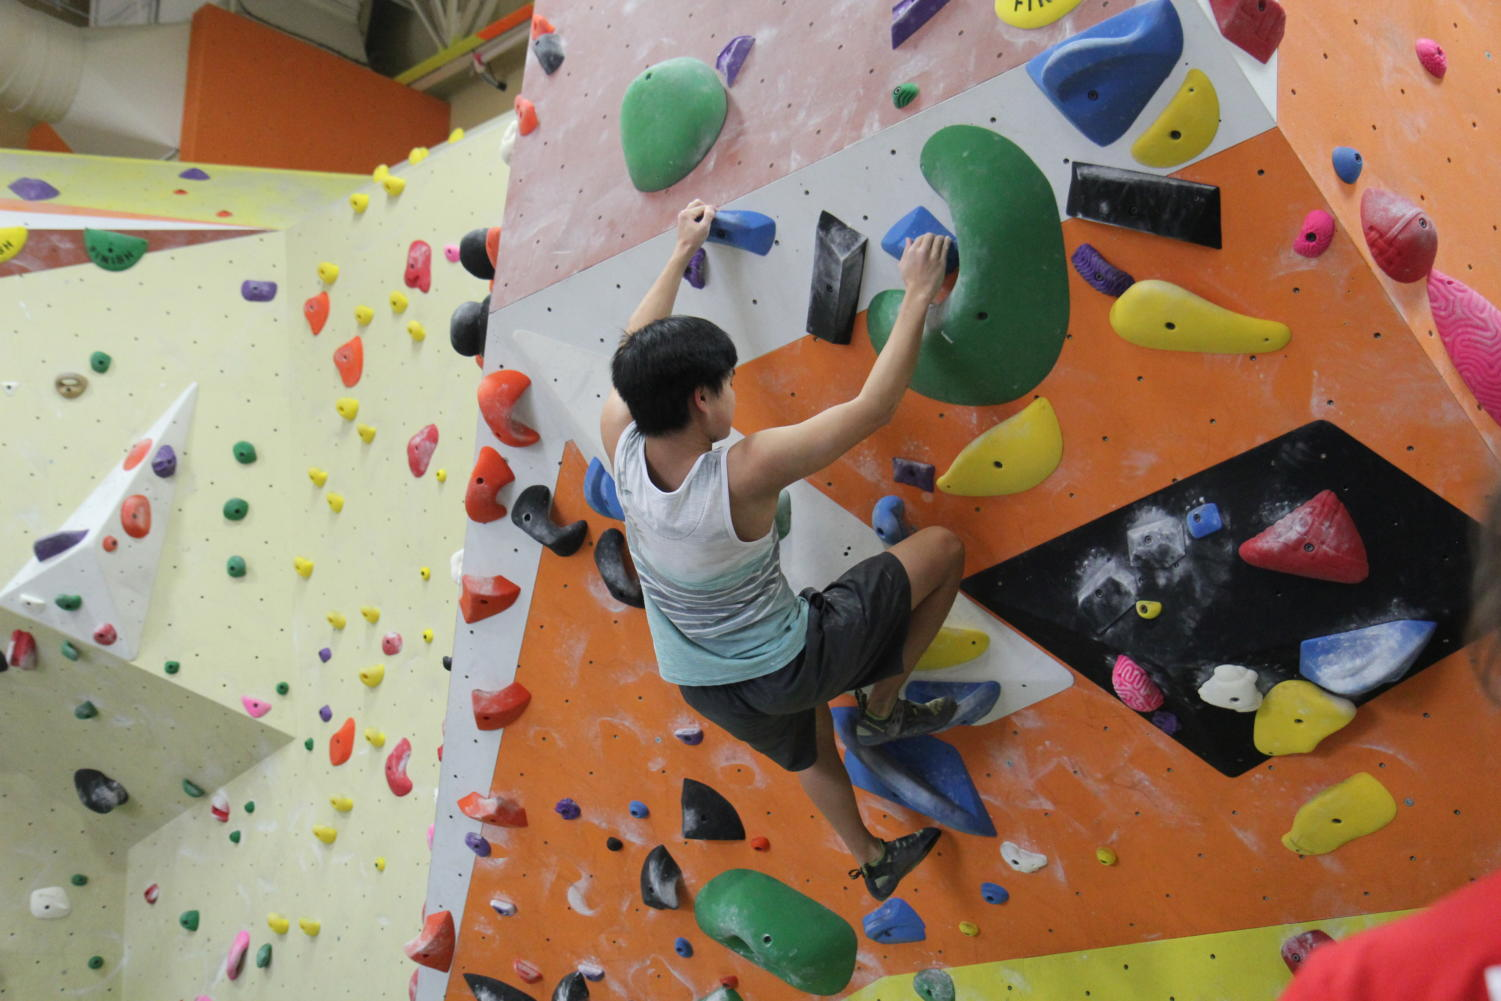 """Jacob Chang, senior, free climbs at practice on Jan. 21. """"I like it because you can see your improvement,"""" Chang said. """"You can see it from your grip strength to your overall strength to get higher and climb harder routes."""""""